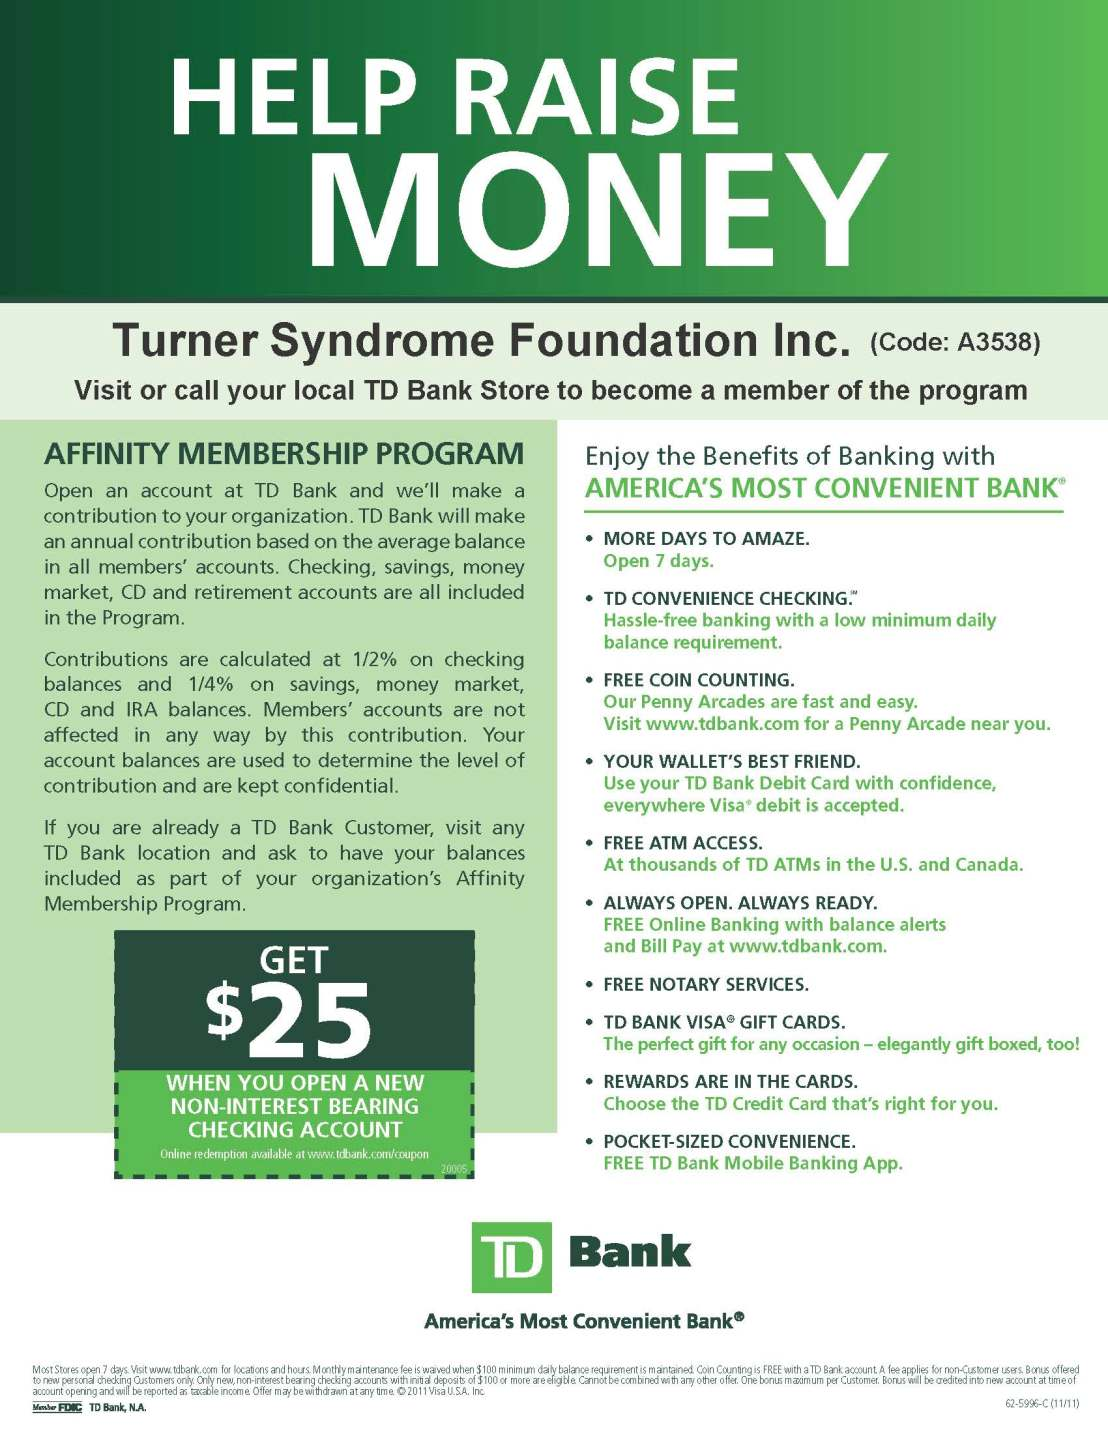 TD bank support